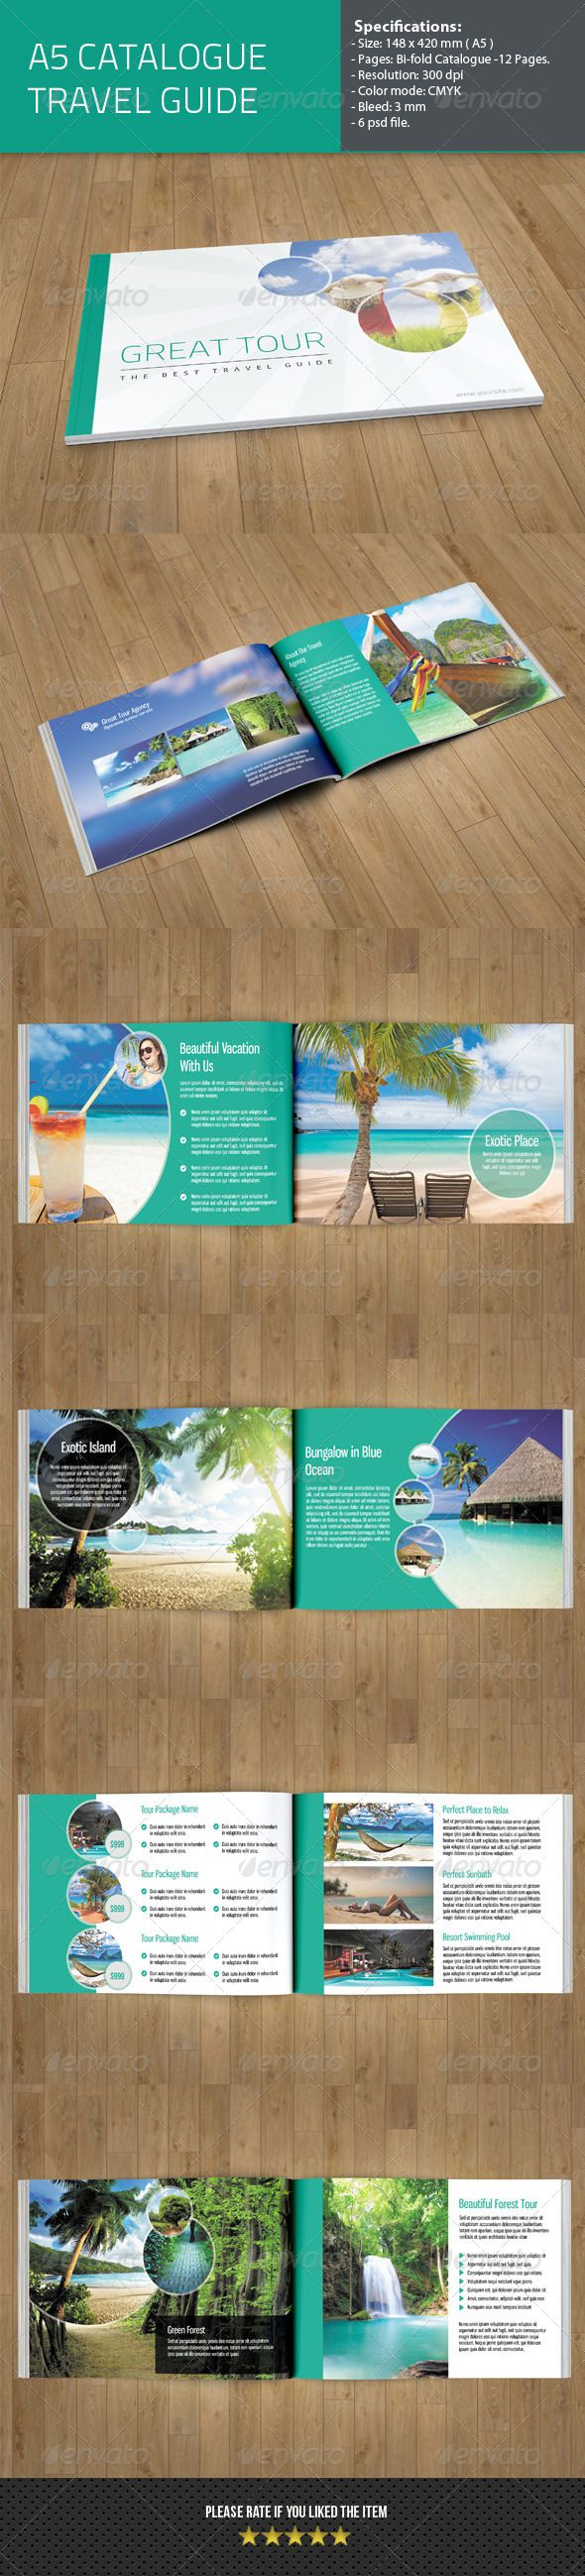 Travel Guide Catalog  Travel Guide Catalog And Travel